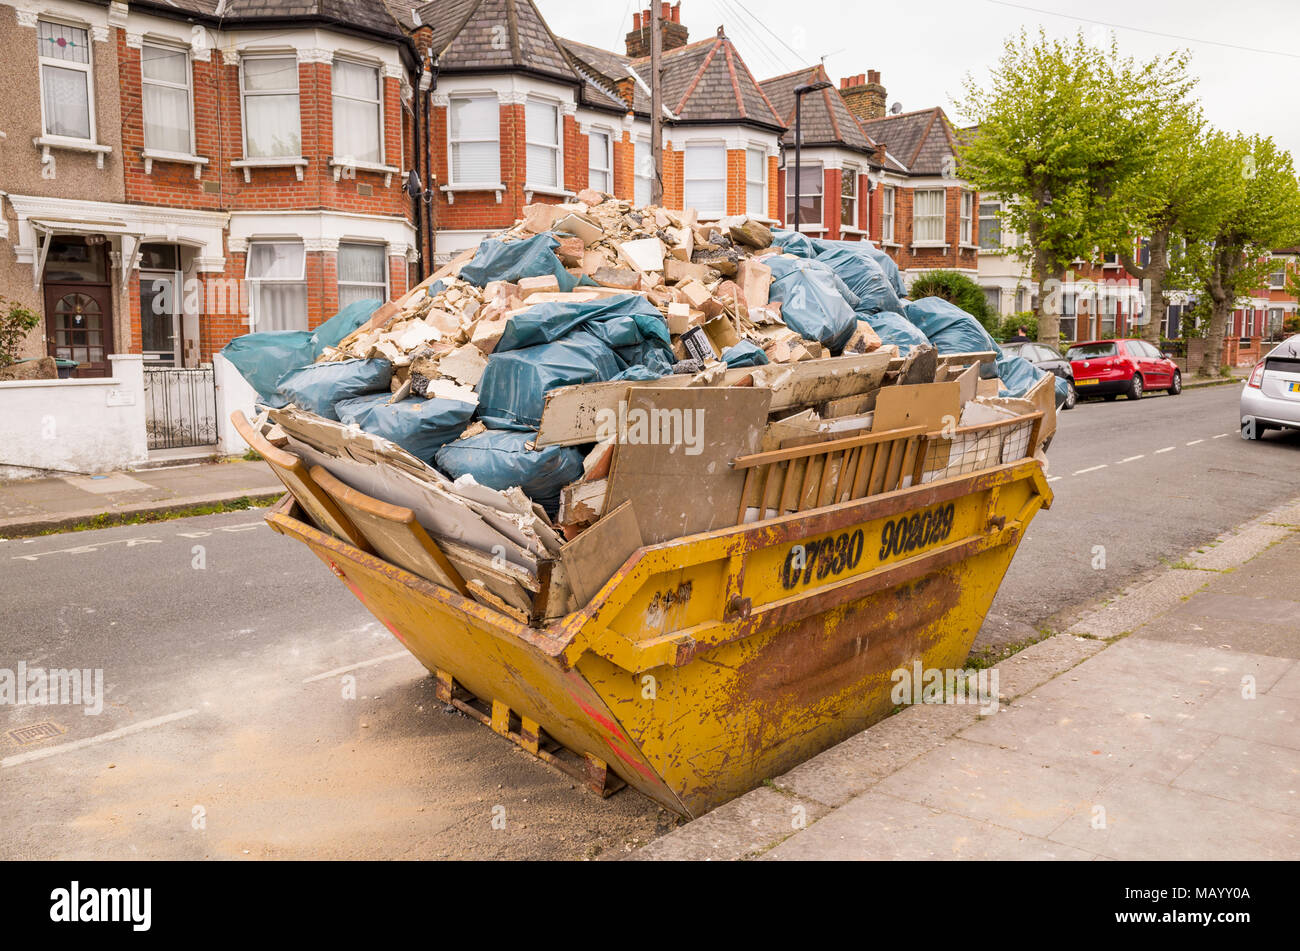 Builder's rubble in full skip on a terraced street, Haringey, North London, UK - Stock Image